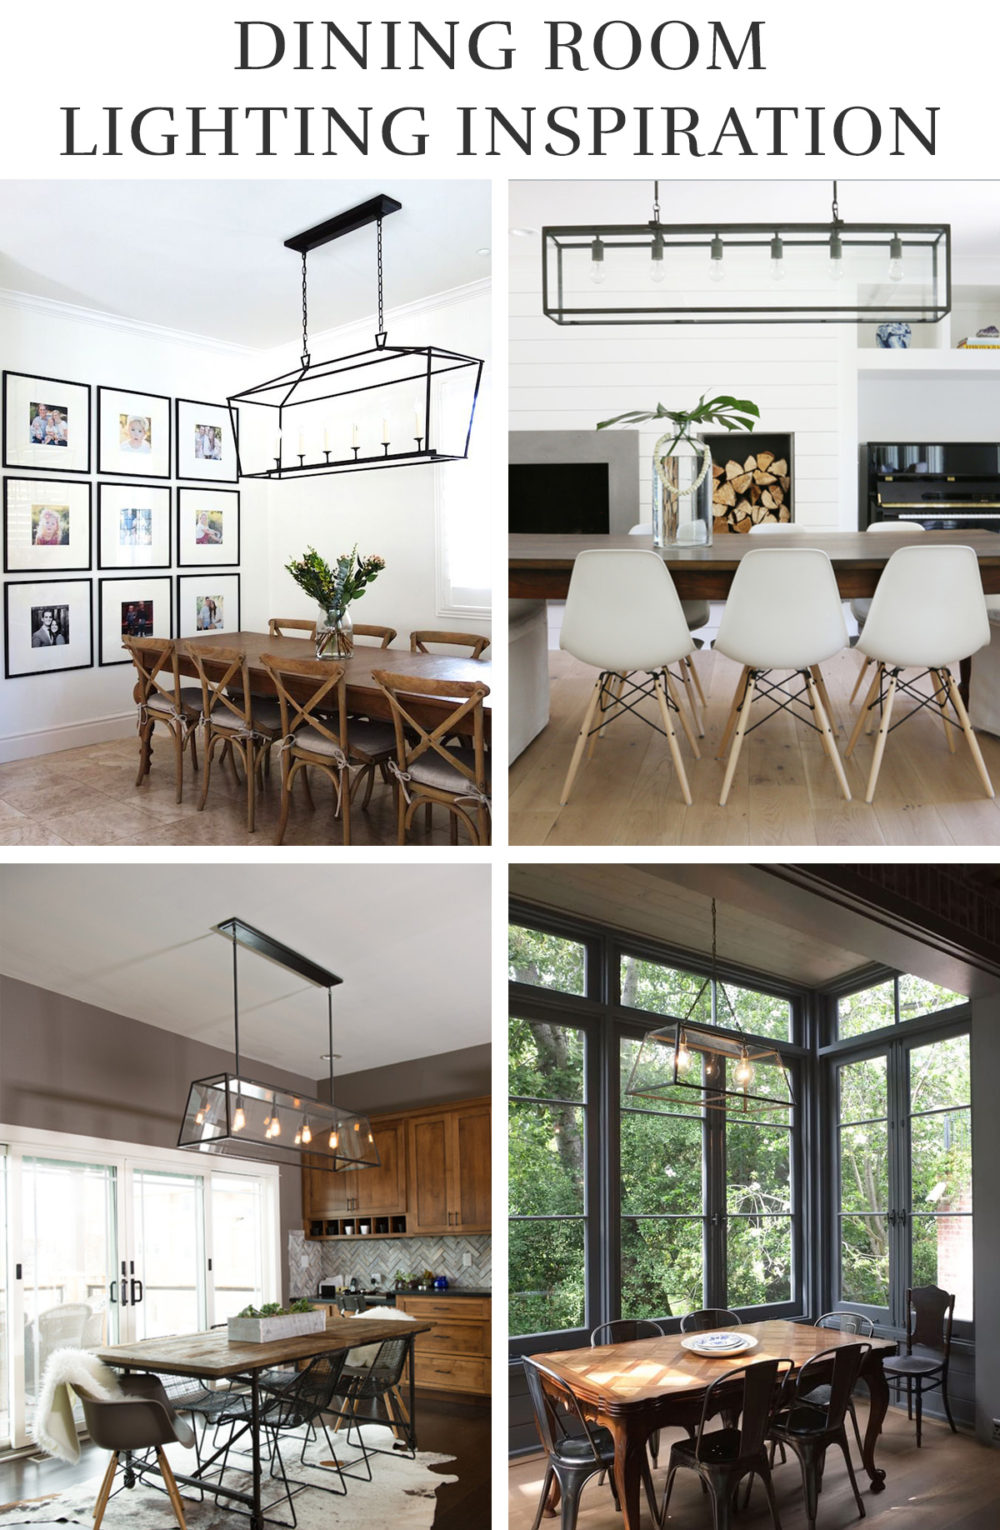 Industrial Modern Dining Room Lighting Inspiration | Lumber Loves Lace | lumberloveslace.com